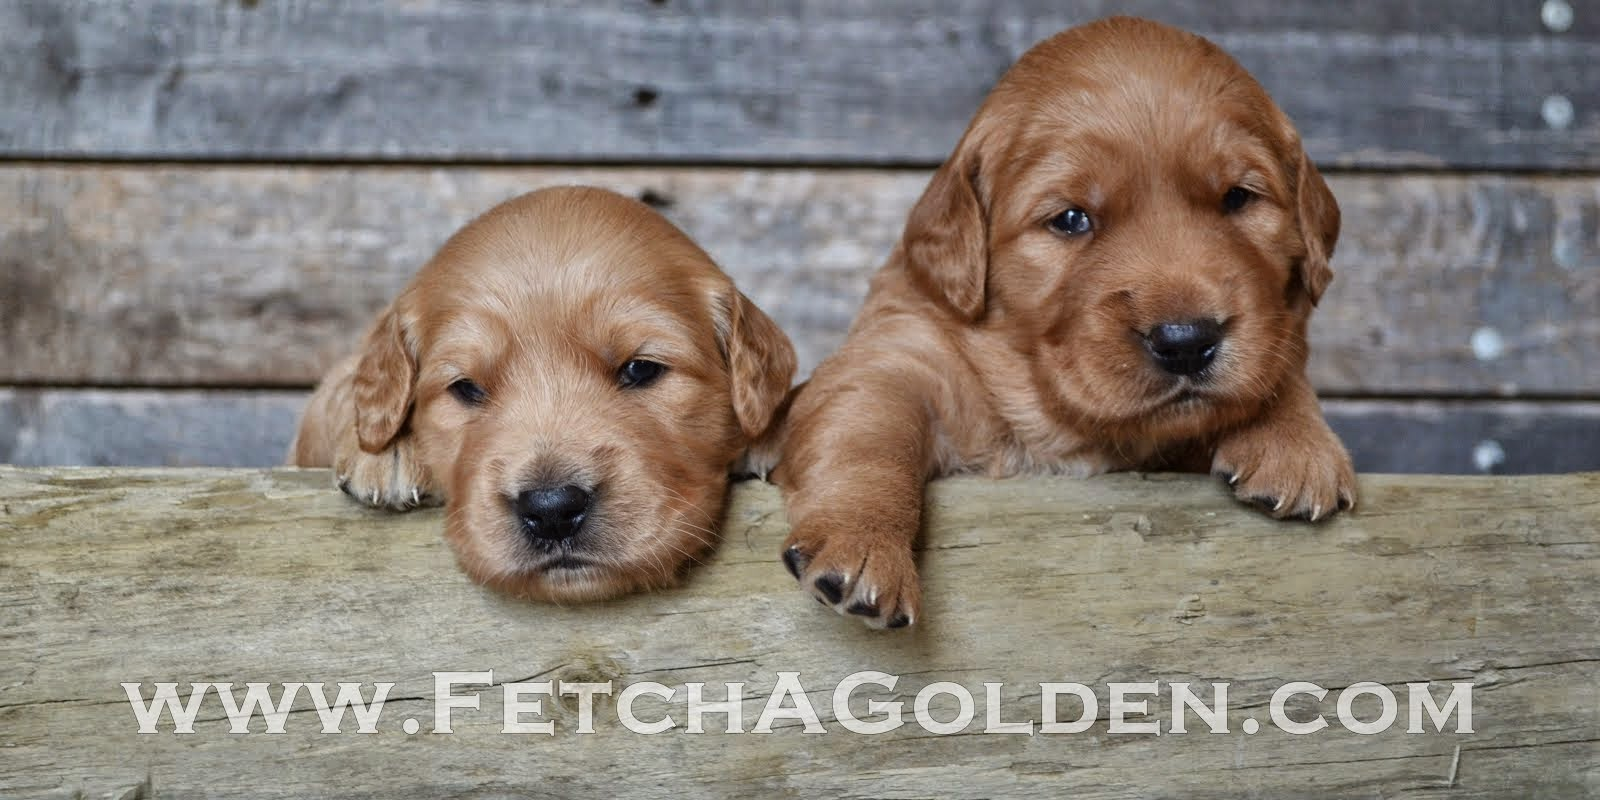 Fetch A Golden